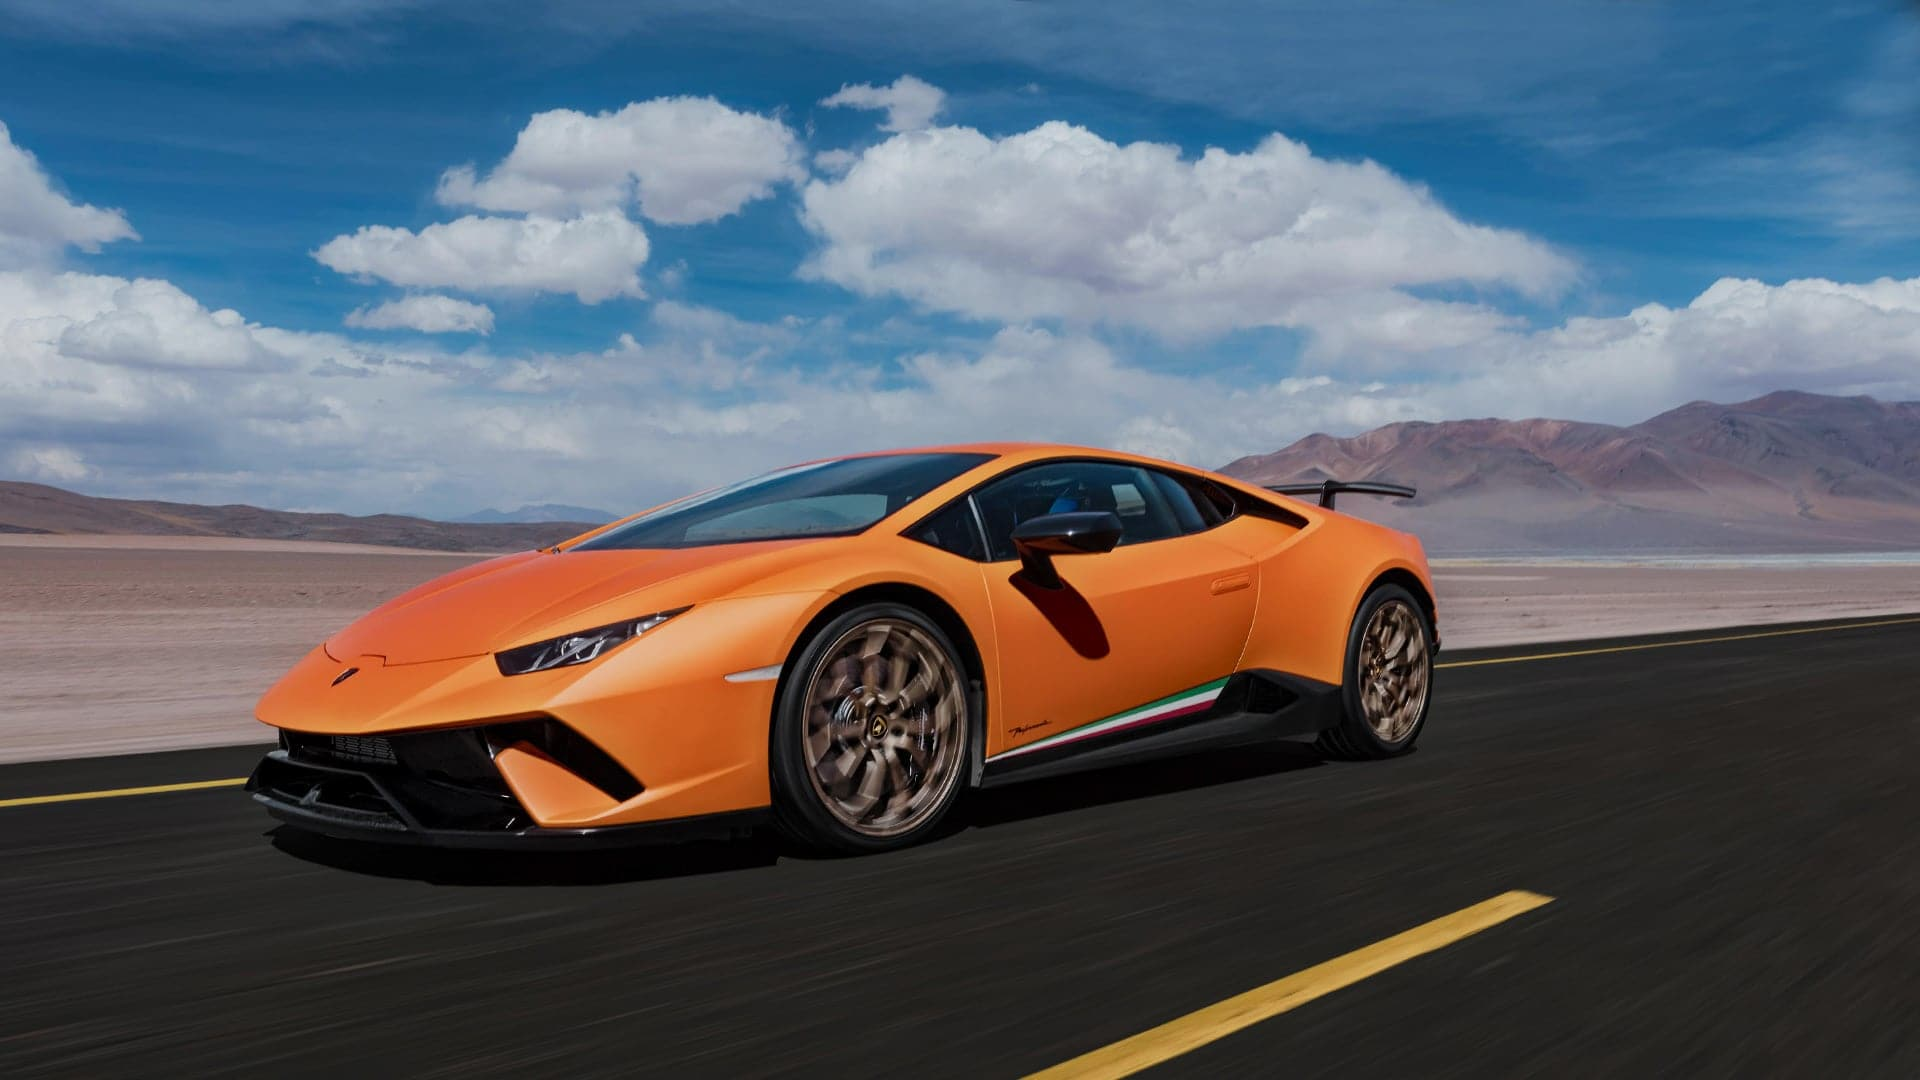 A video has recently popped up on YouTube showing a Lamborghini Aventador SV competing against a Huracan Performante on wet asphalt. The two vehicles were compared in a drag race, a rolling race, and a brake test.